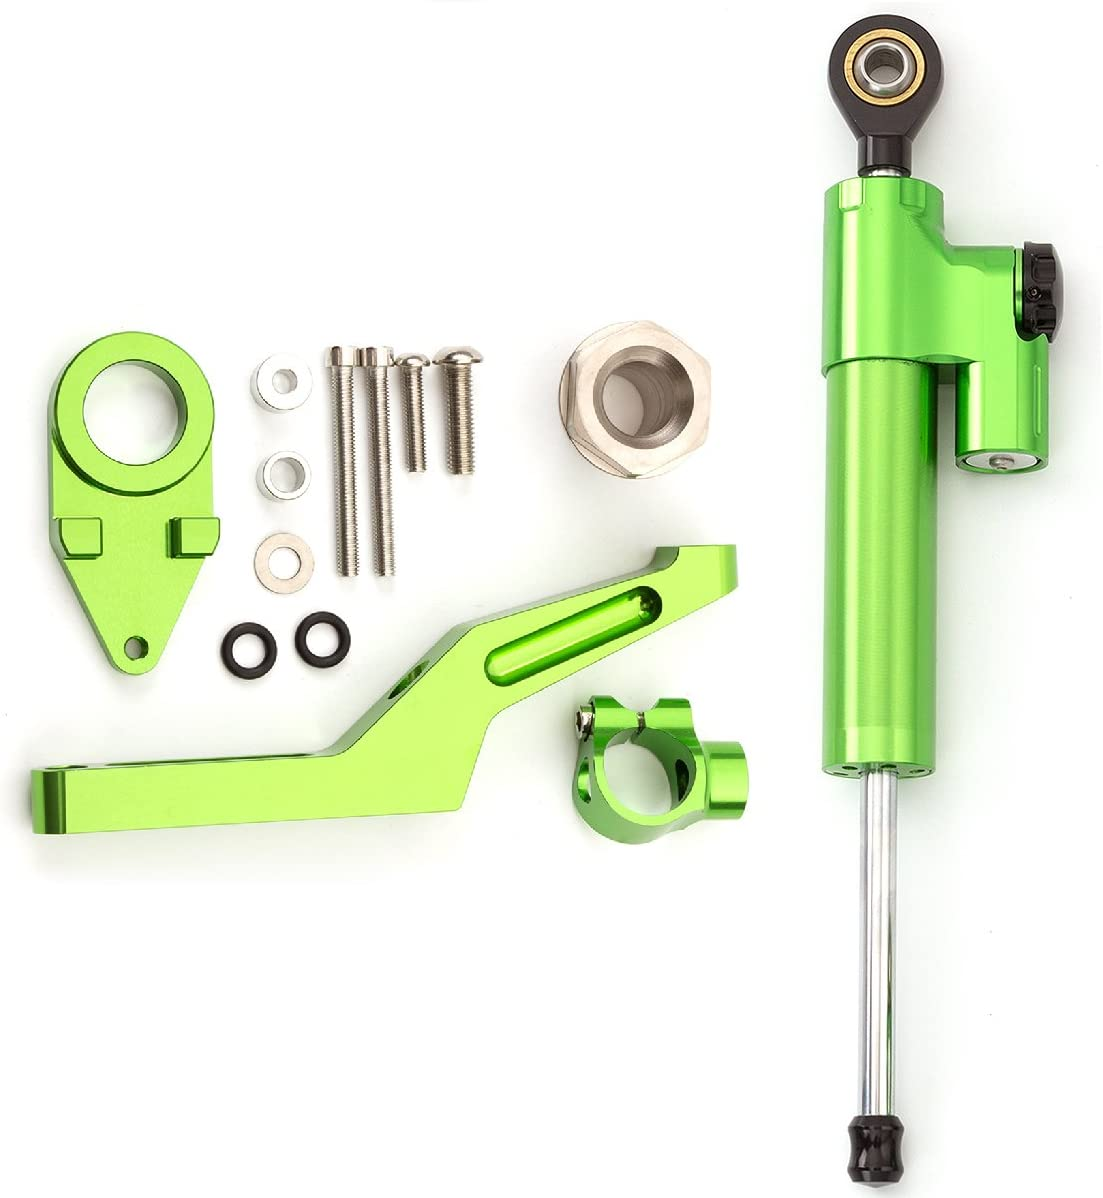 FXCNC Racing Motorcycle CNC Steering Damper Stabilizer Buffer Control Bar With Mounting Bracket Kit Full Set Fit For Kawasaki Ninja 600 ZX636 ZX6R ZX-6R 2009-2019